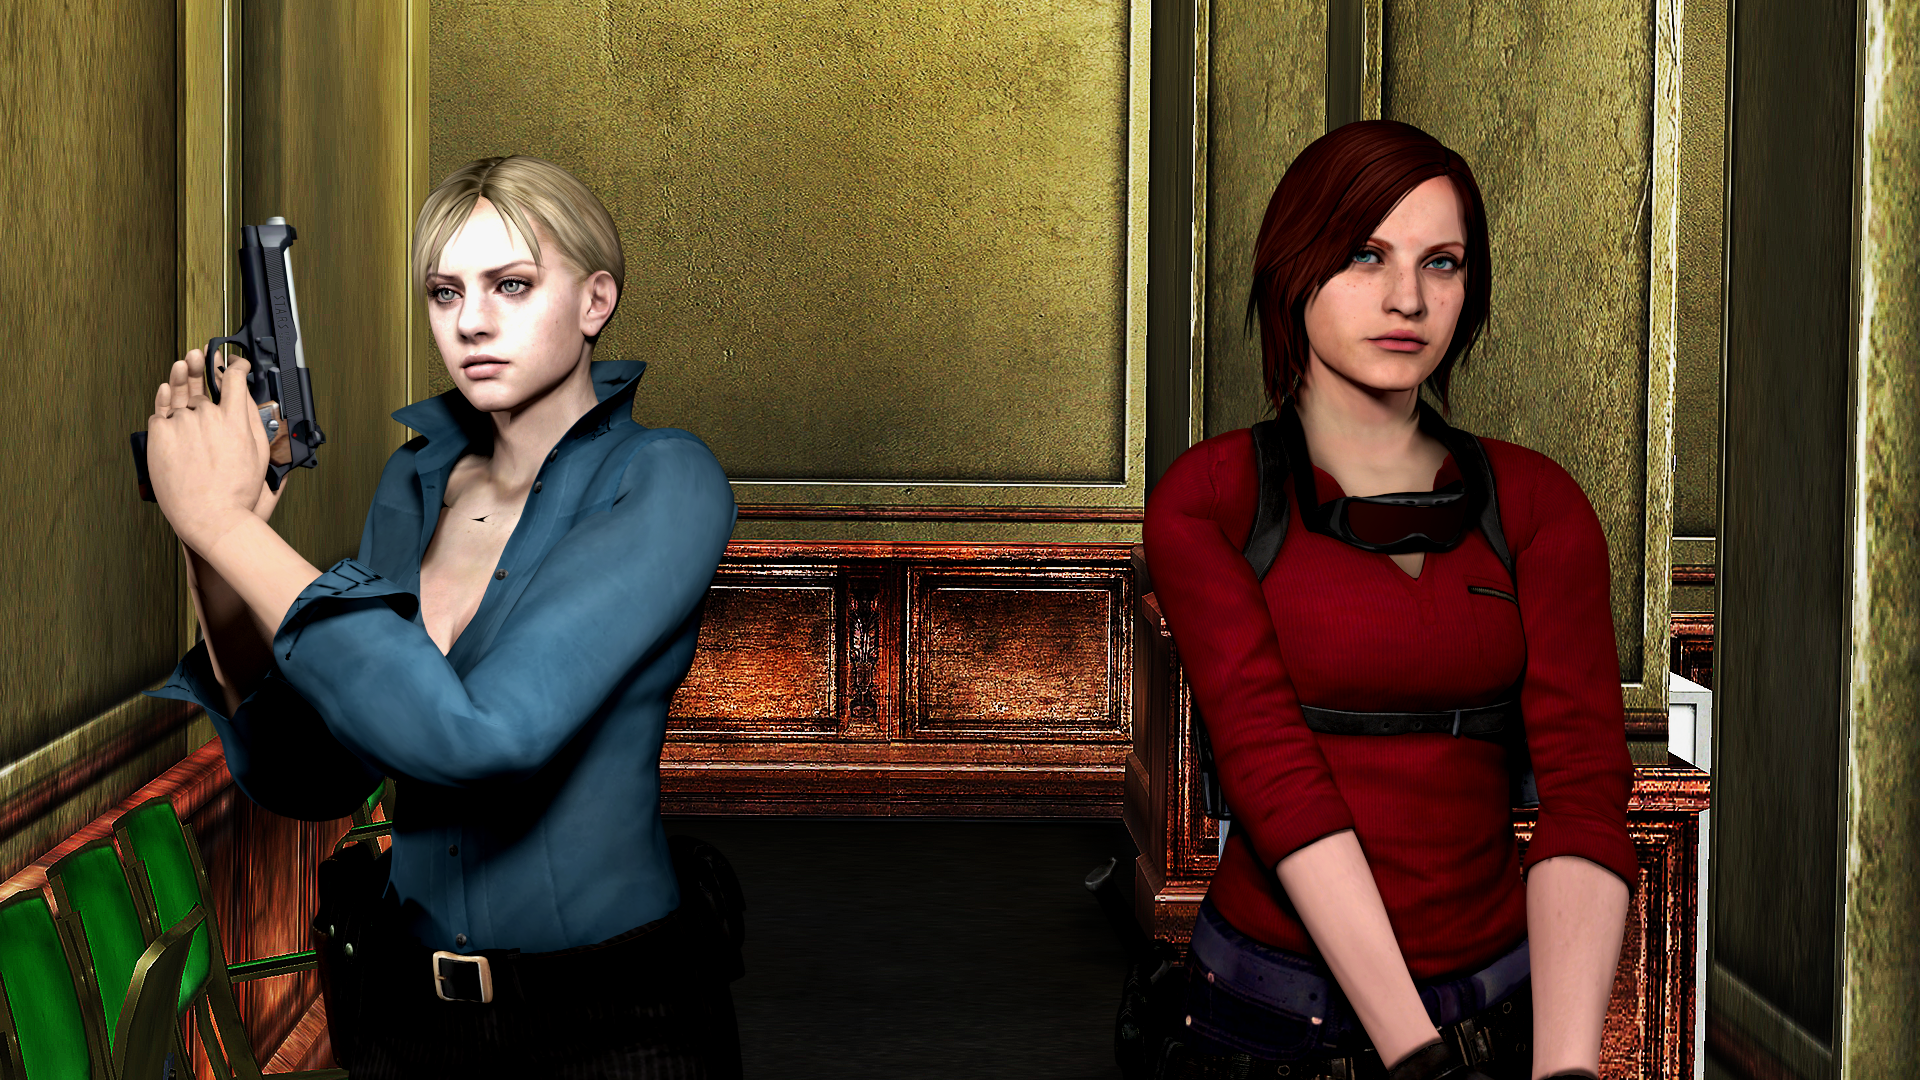 Jill Valentine And Claire Redfield By Mister-Valentine On